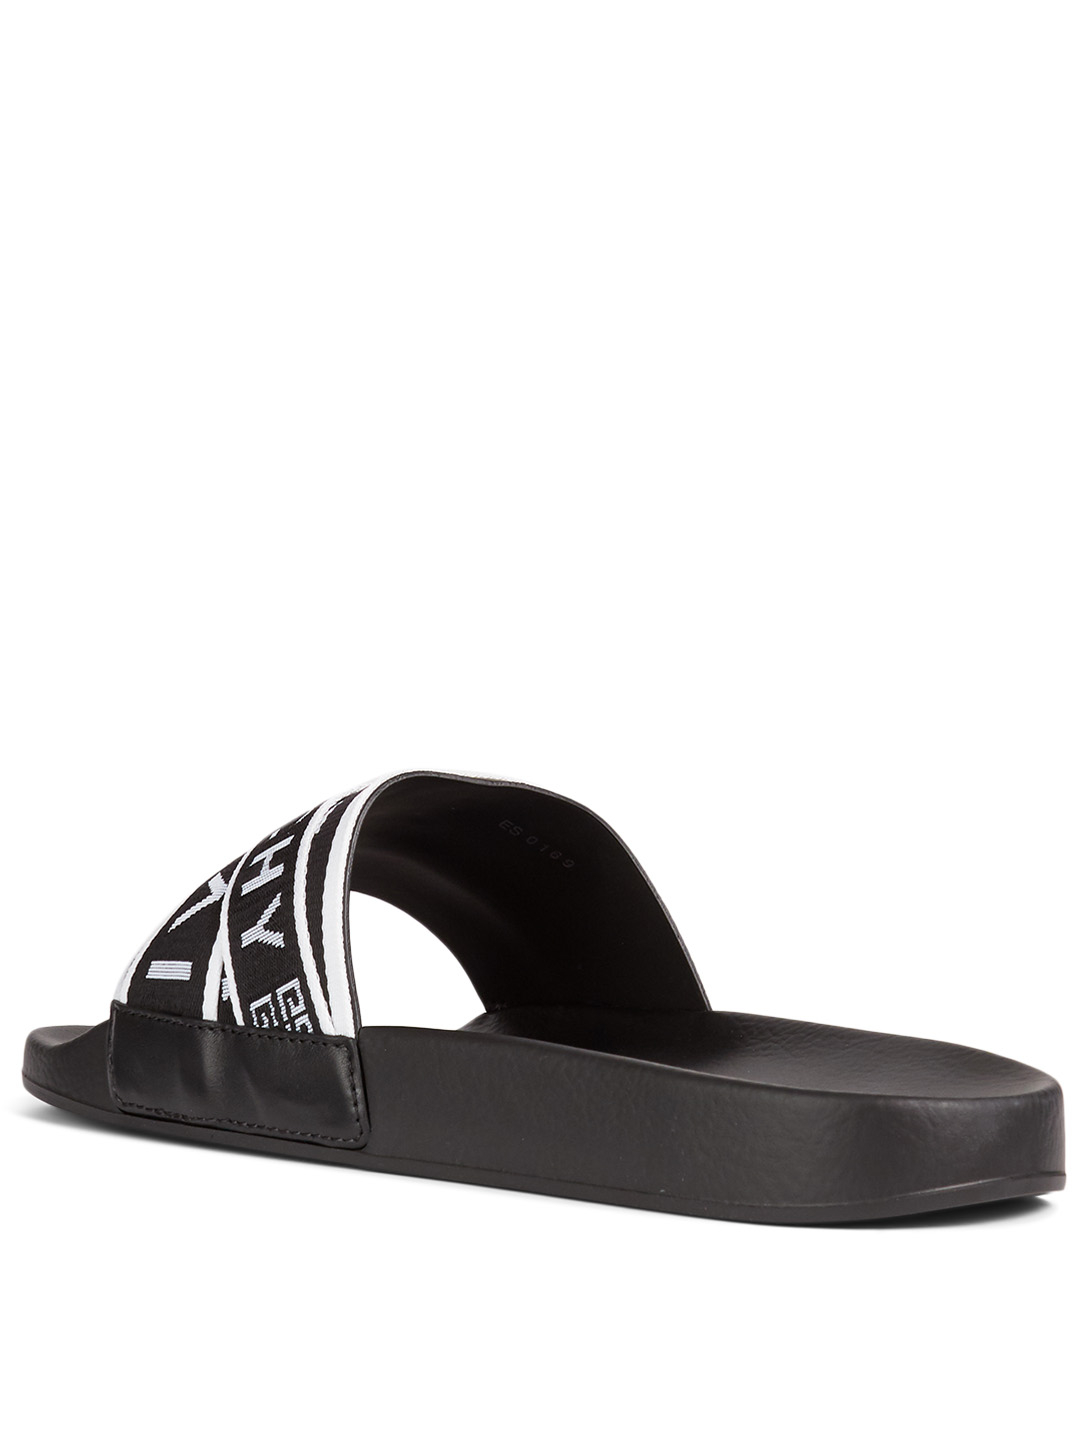 993286f12284 ... GIVENCHY 4G Webbing Slide Sandals Men s Black ...